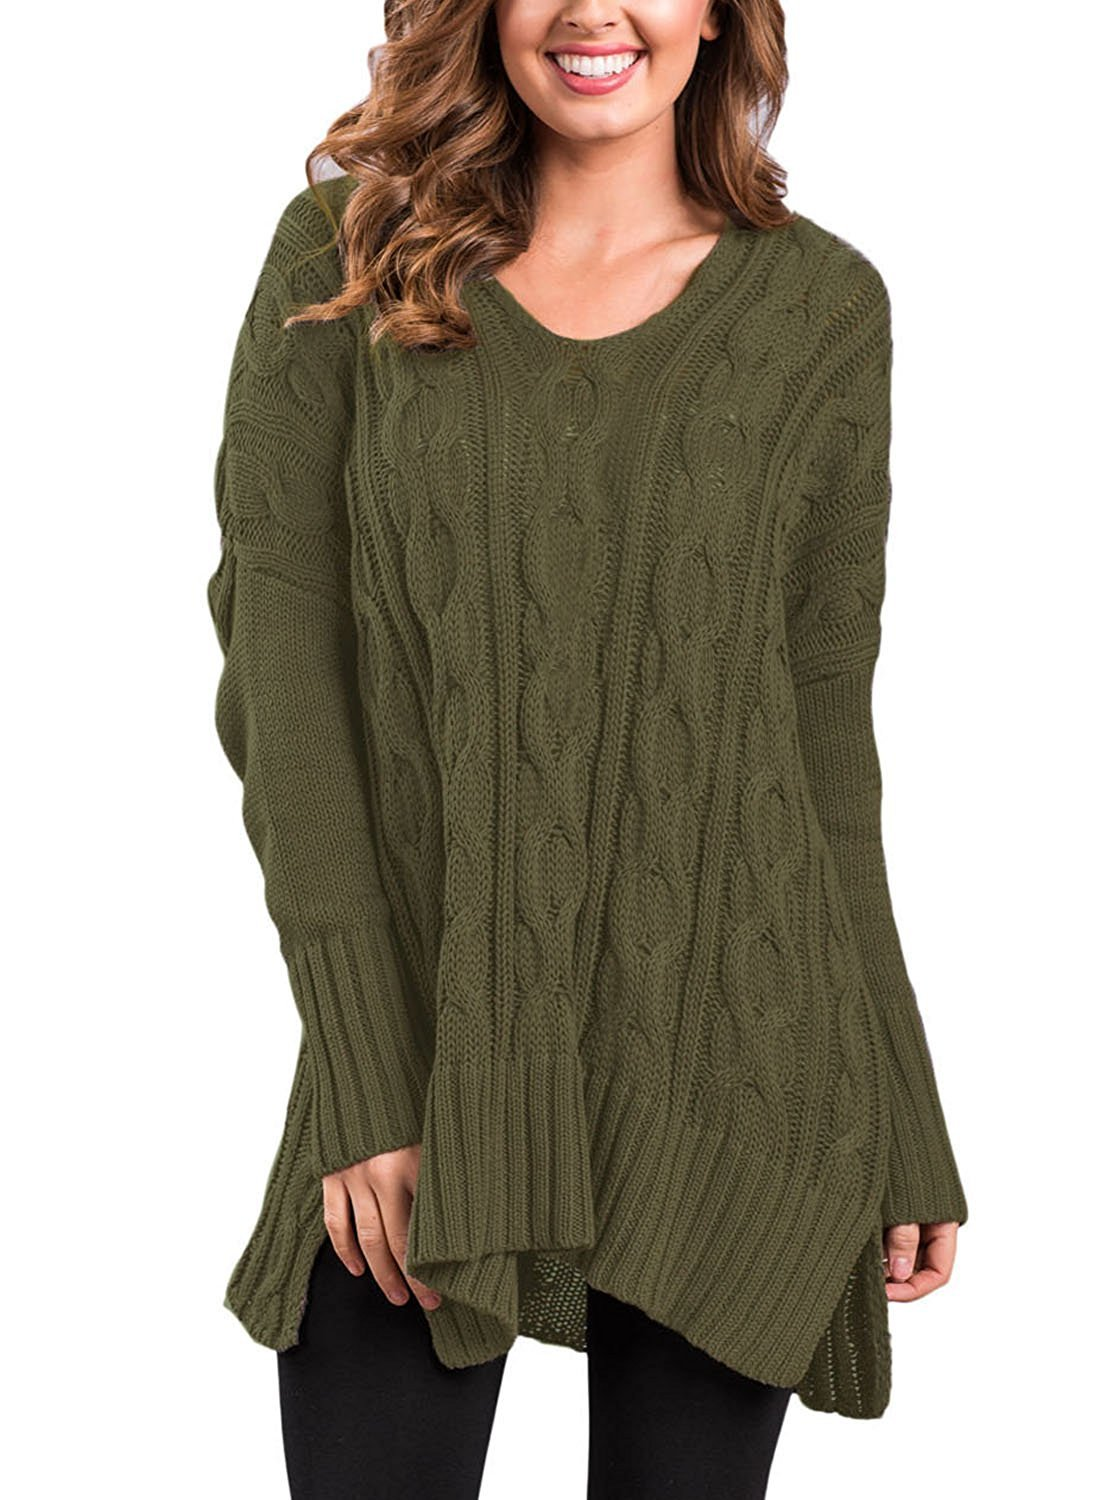 Haogo Womens Casual V Neck Long Sleeve Cable Knit Loose Pullover Sweater Green XX-Large by Haogo